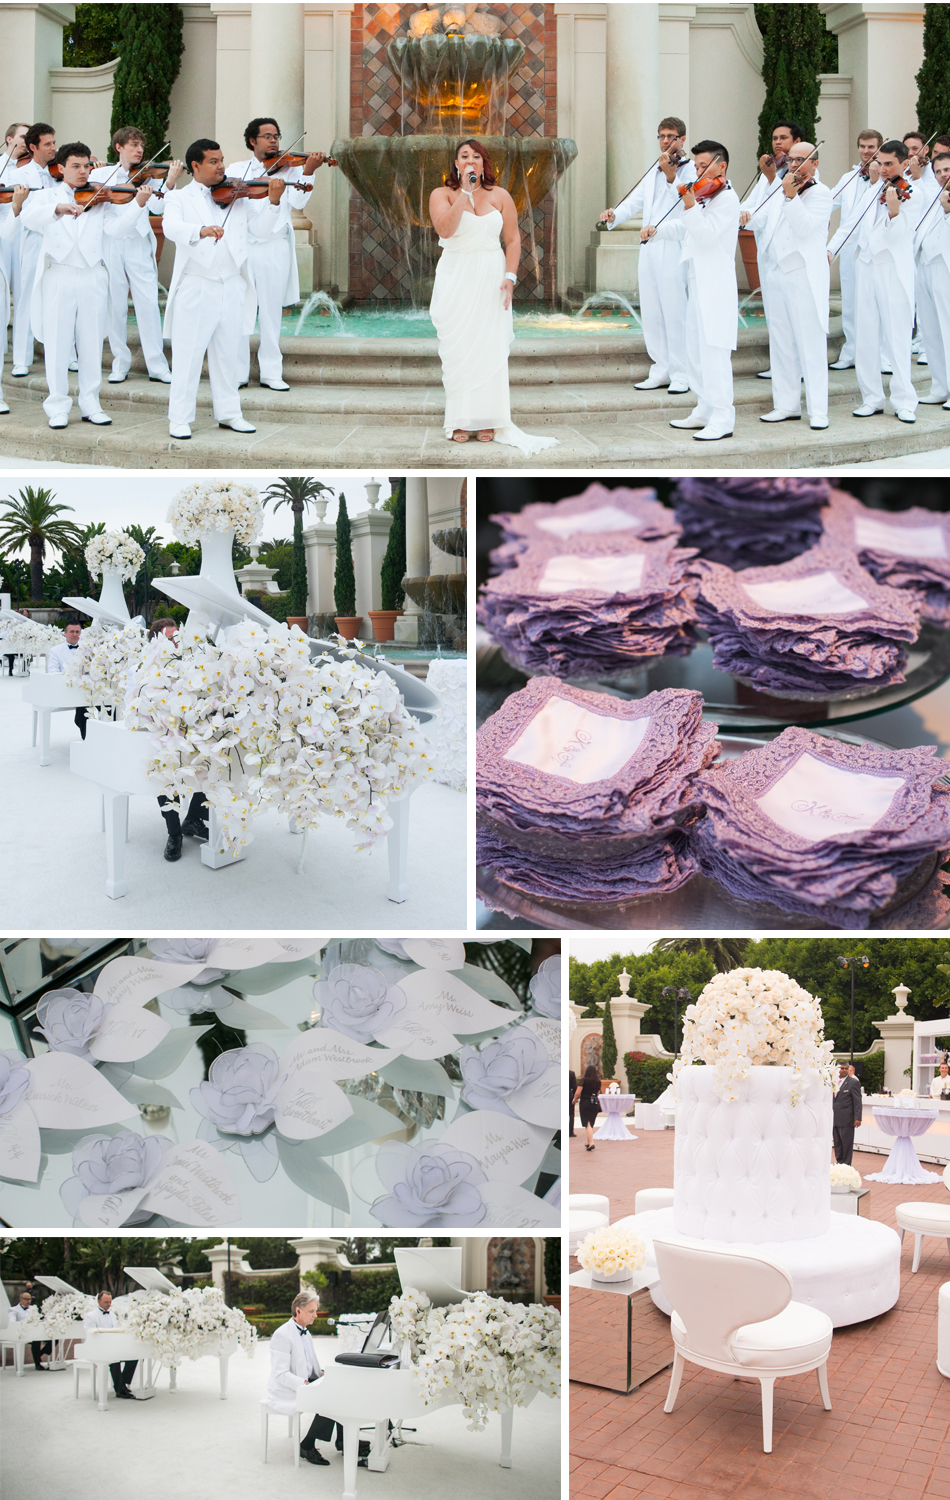 internationaleventcompany.com | International Event Company Los Angeles Wedding Planner and Designer | Weddings at Monarch Beach Resort | Luxury Event Planners in Southern California _ (5).jpg